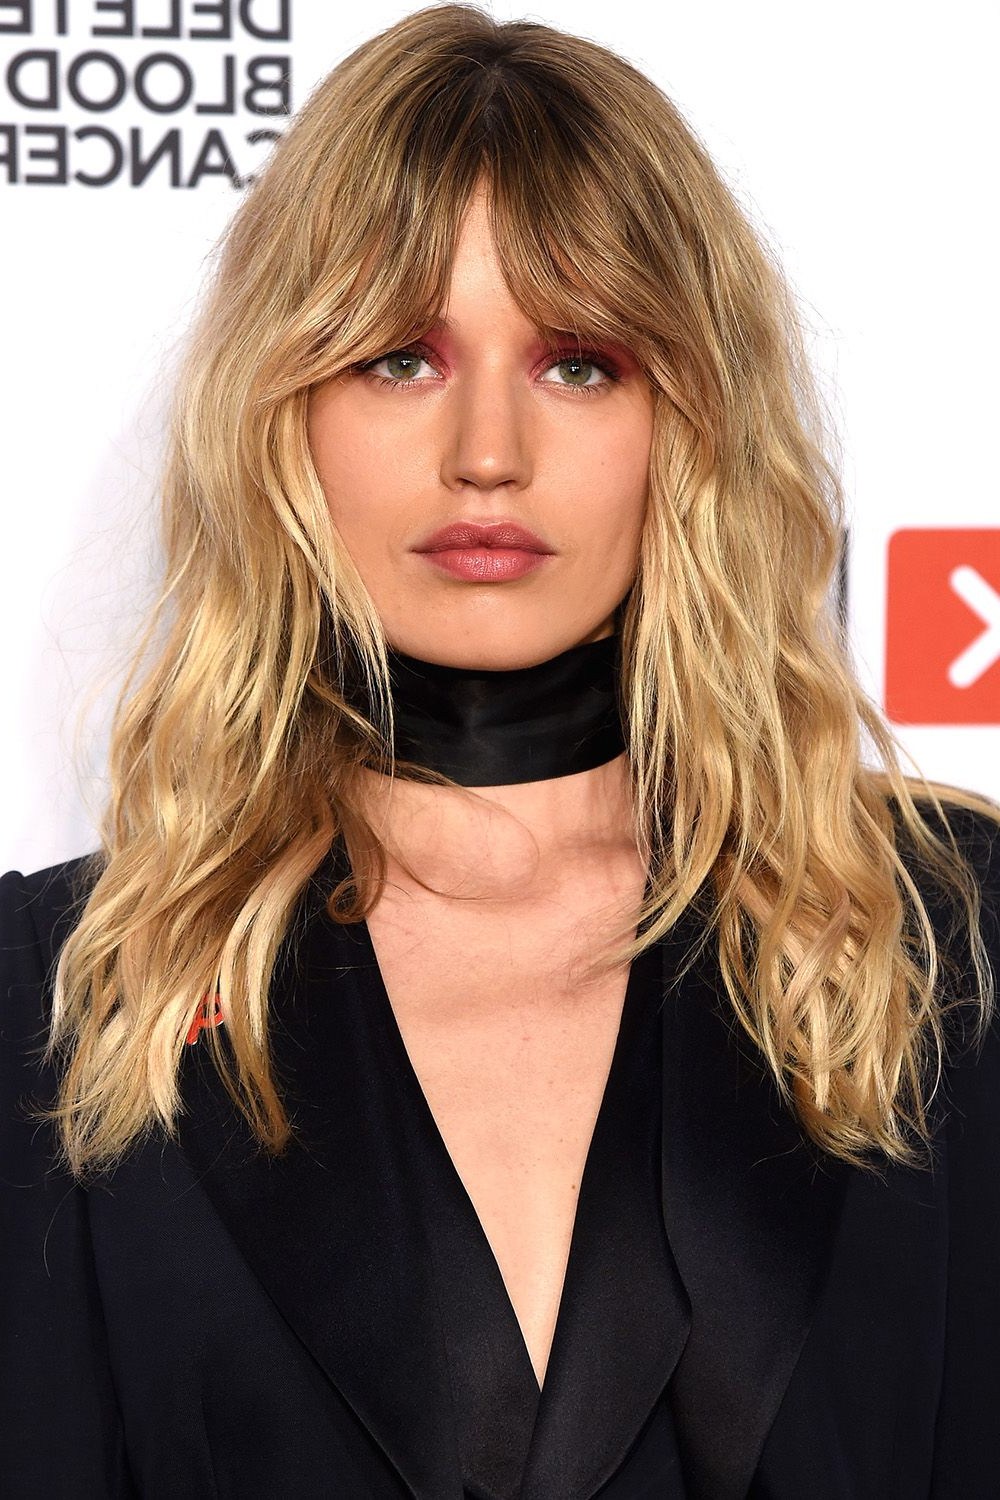 40 Best Medium Hairstyles – Celebrities With Shoulder Length Haircuts In Most Up To Date Medium Hairstyles With Volume (Gallery 18 of 20)